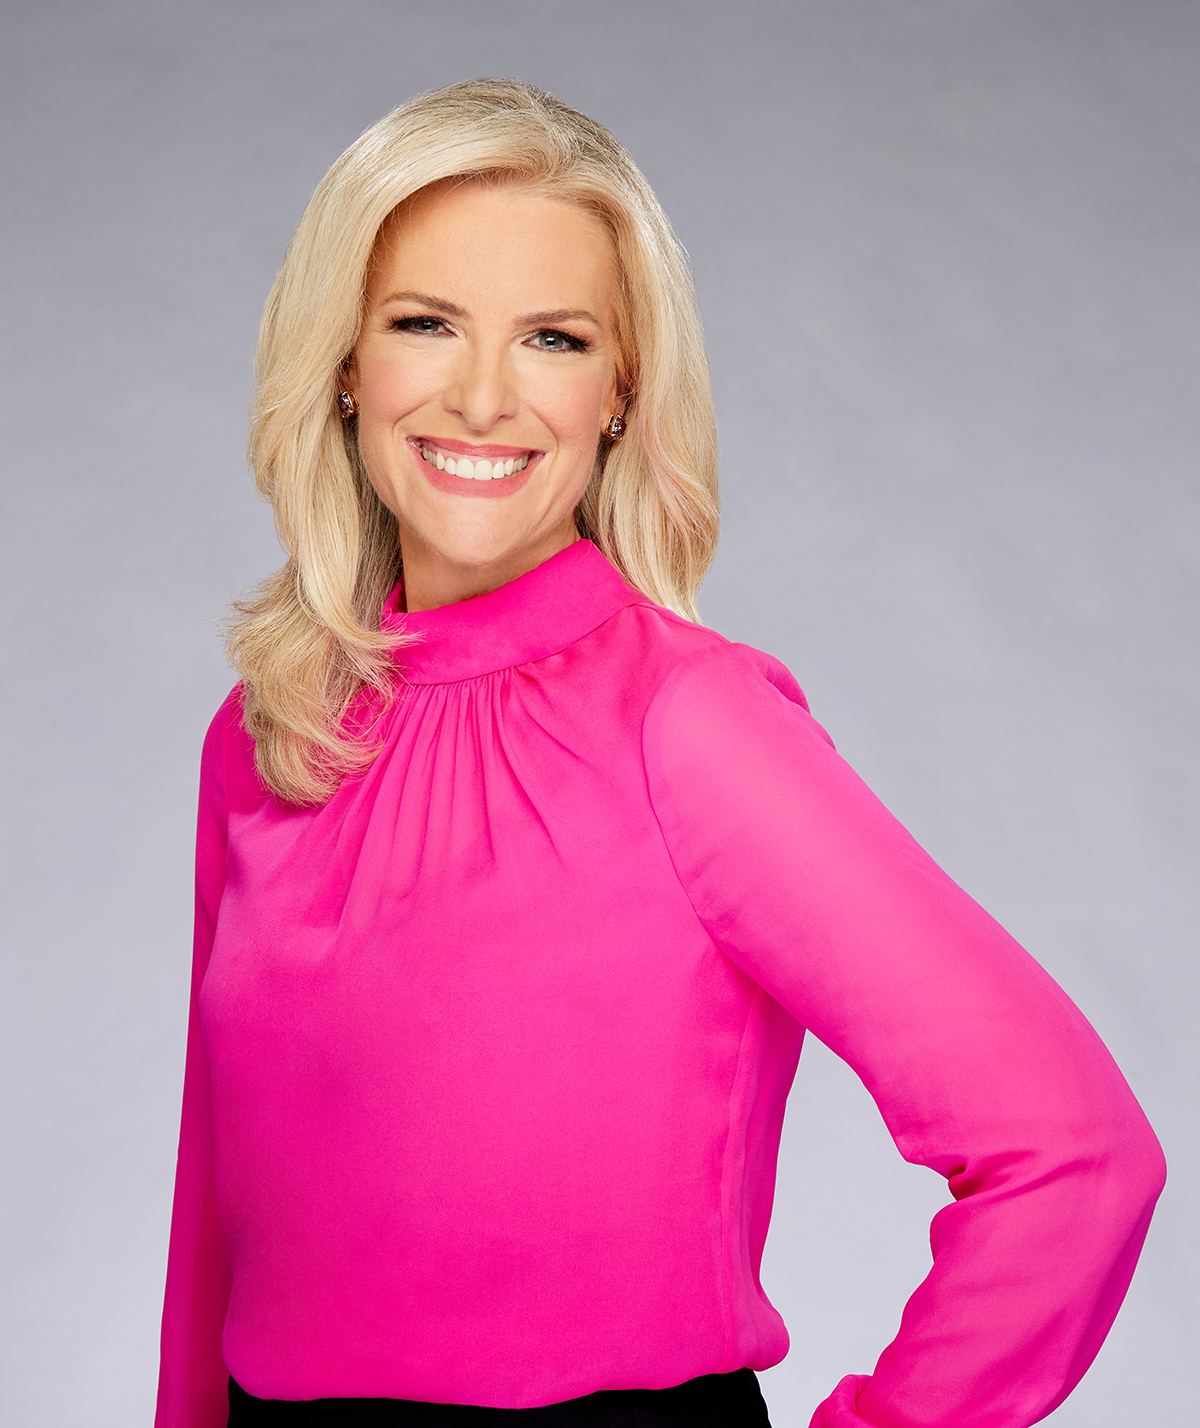 Event - Conversation and Book Signing with Janice Dean